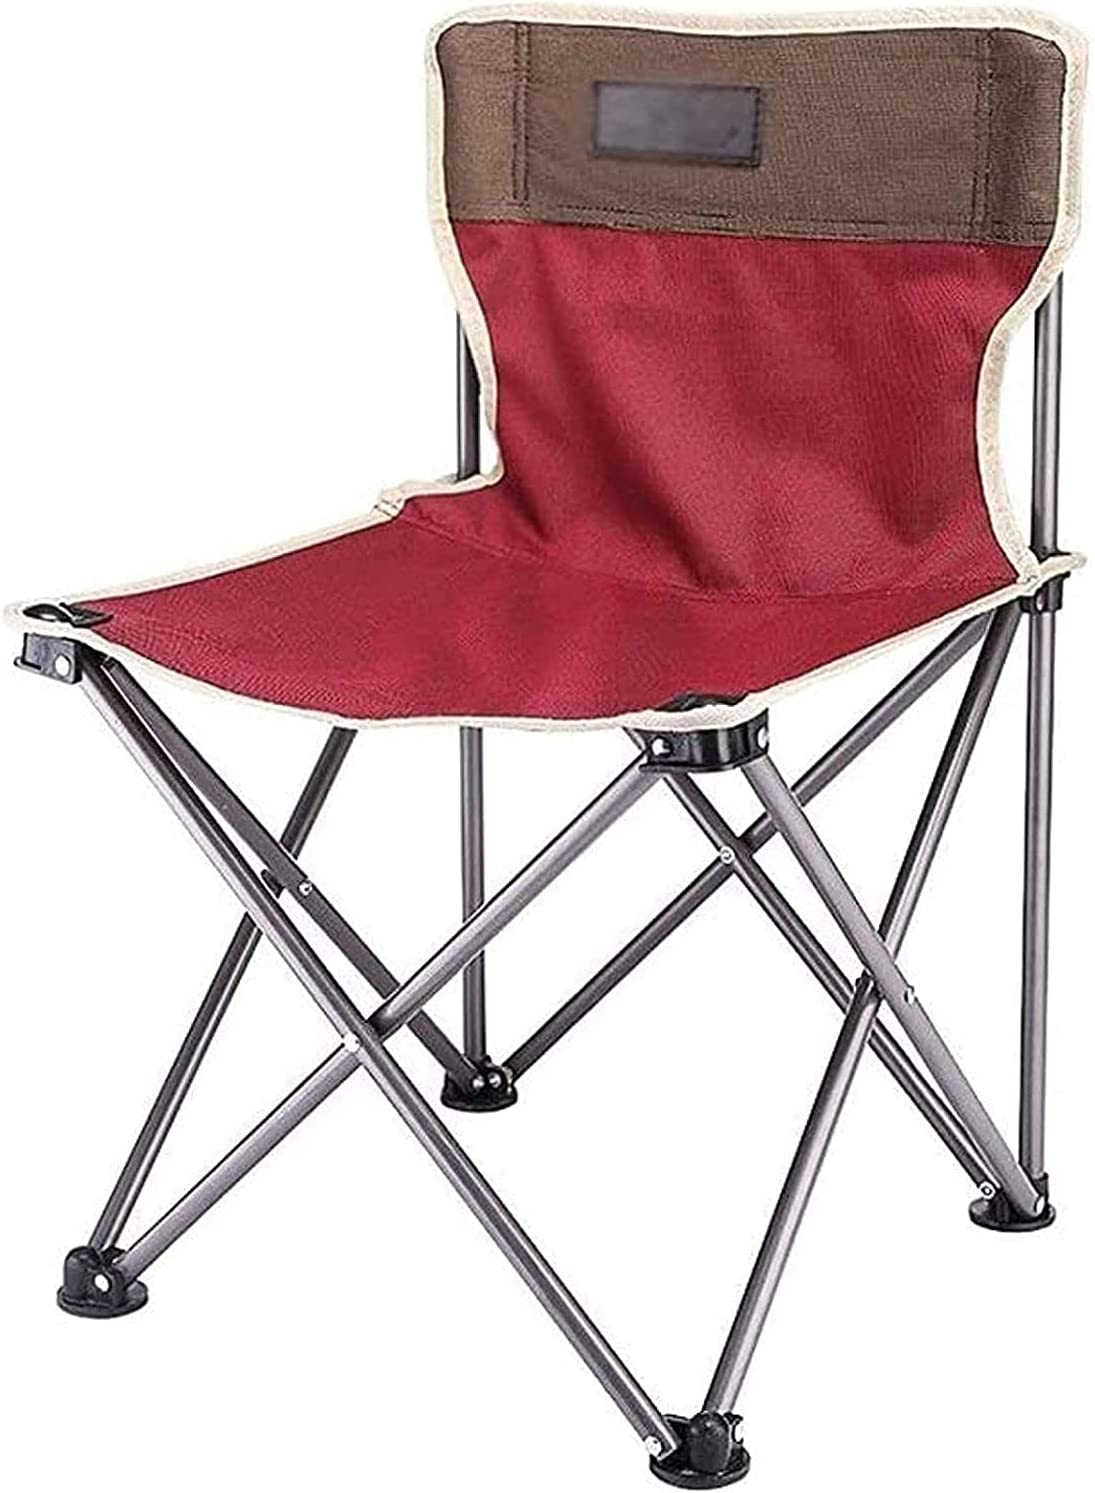 YGCBL Camping Stools Portable with Chair, Sturdy Durable Folding